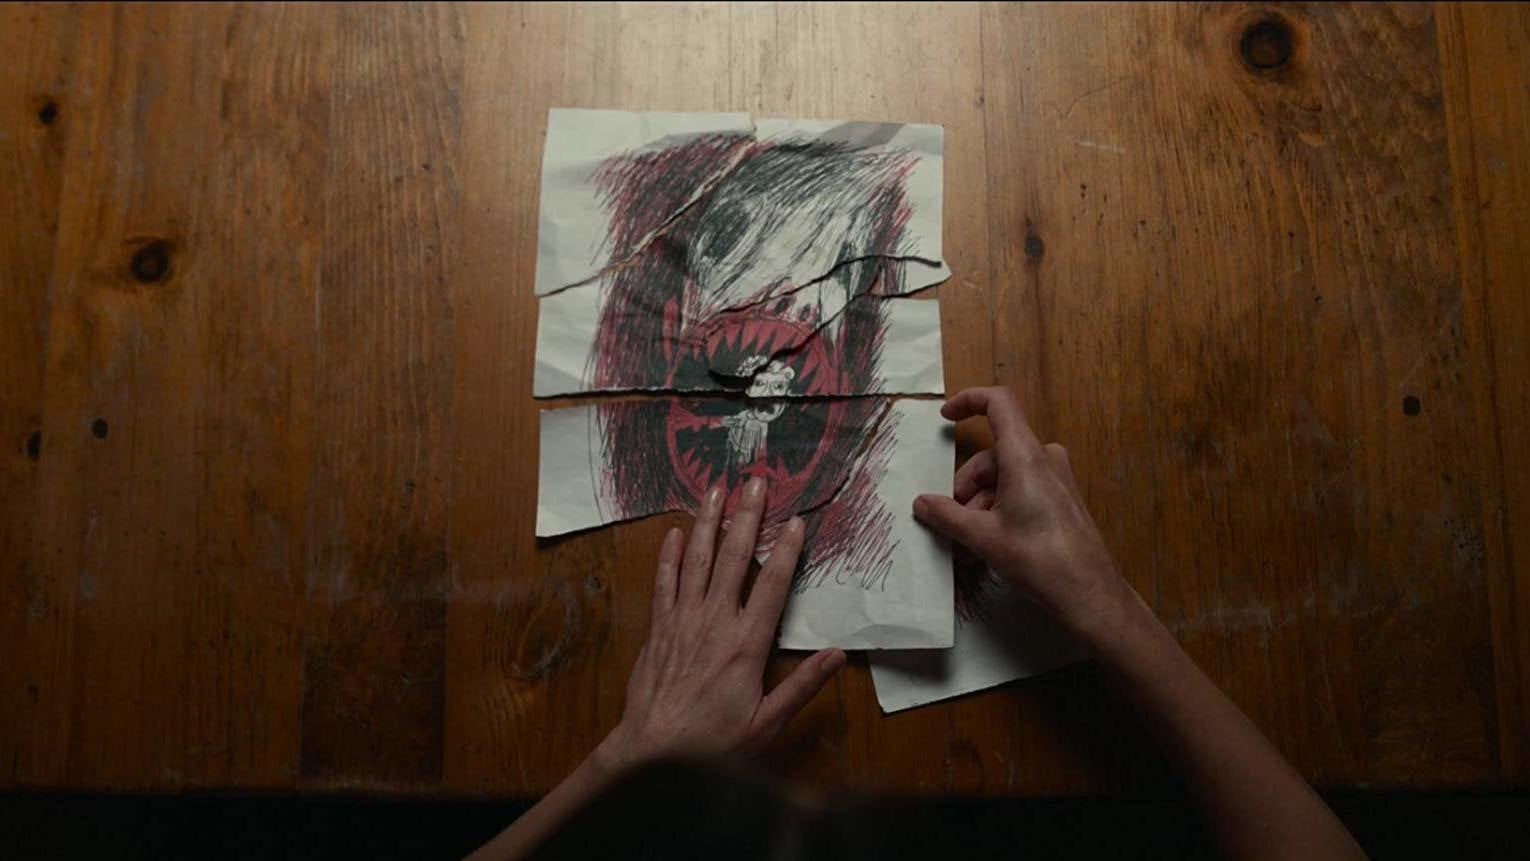 Antlers Looks Like It Will Be One Of 2020's Best Horror Films